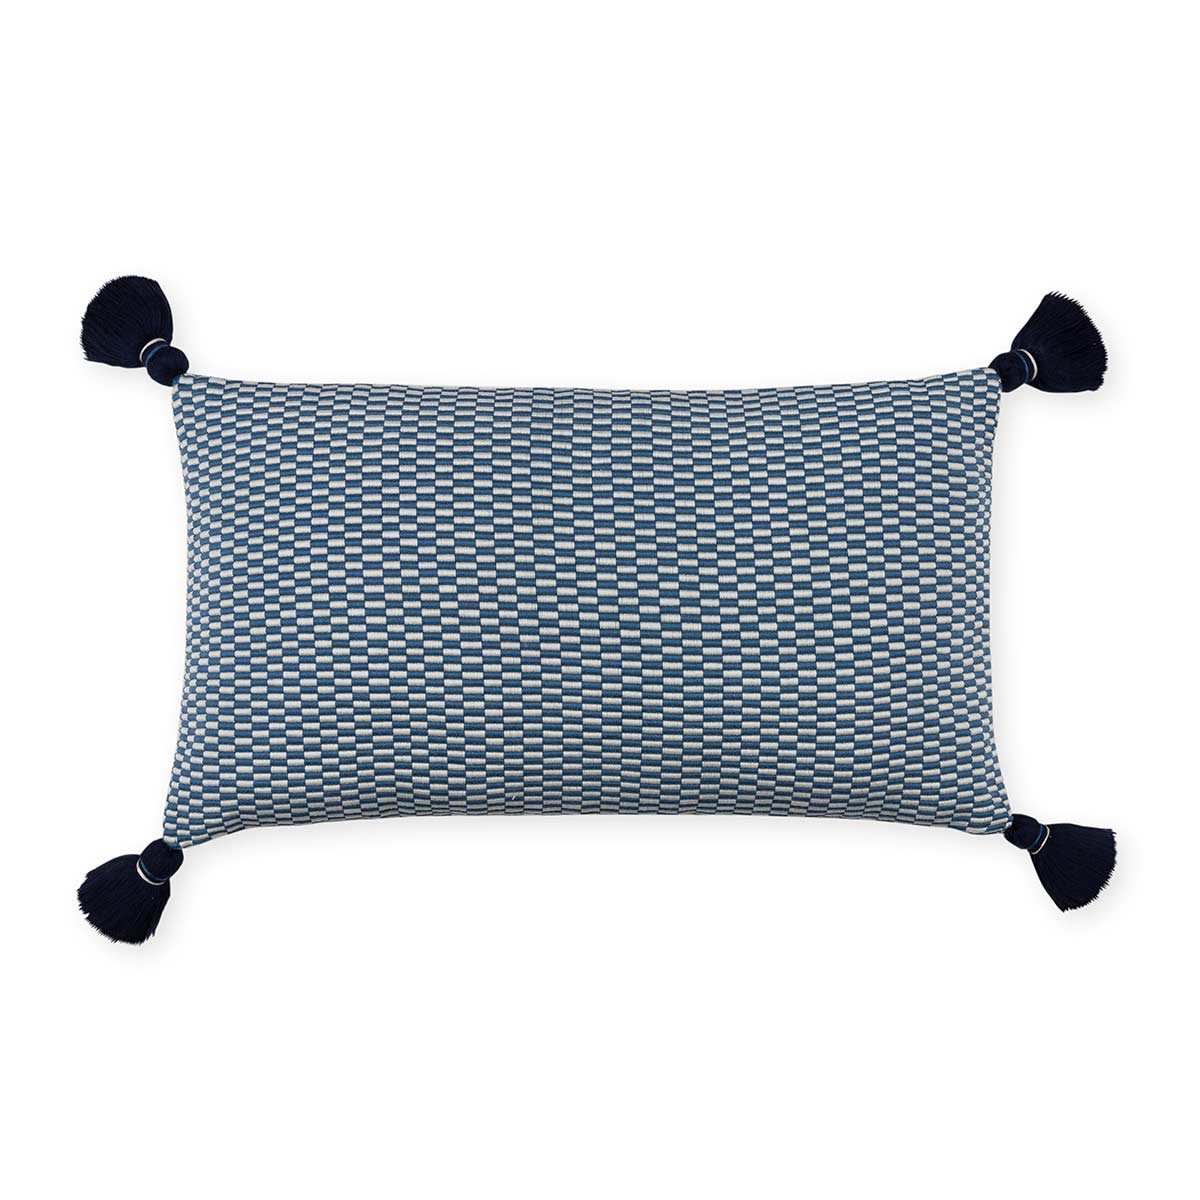 Ella Rectangle Pillow Periwinkle/Natural Eleish Van Breems Home